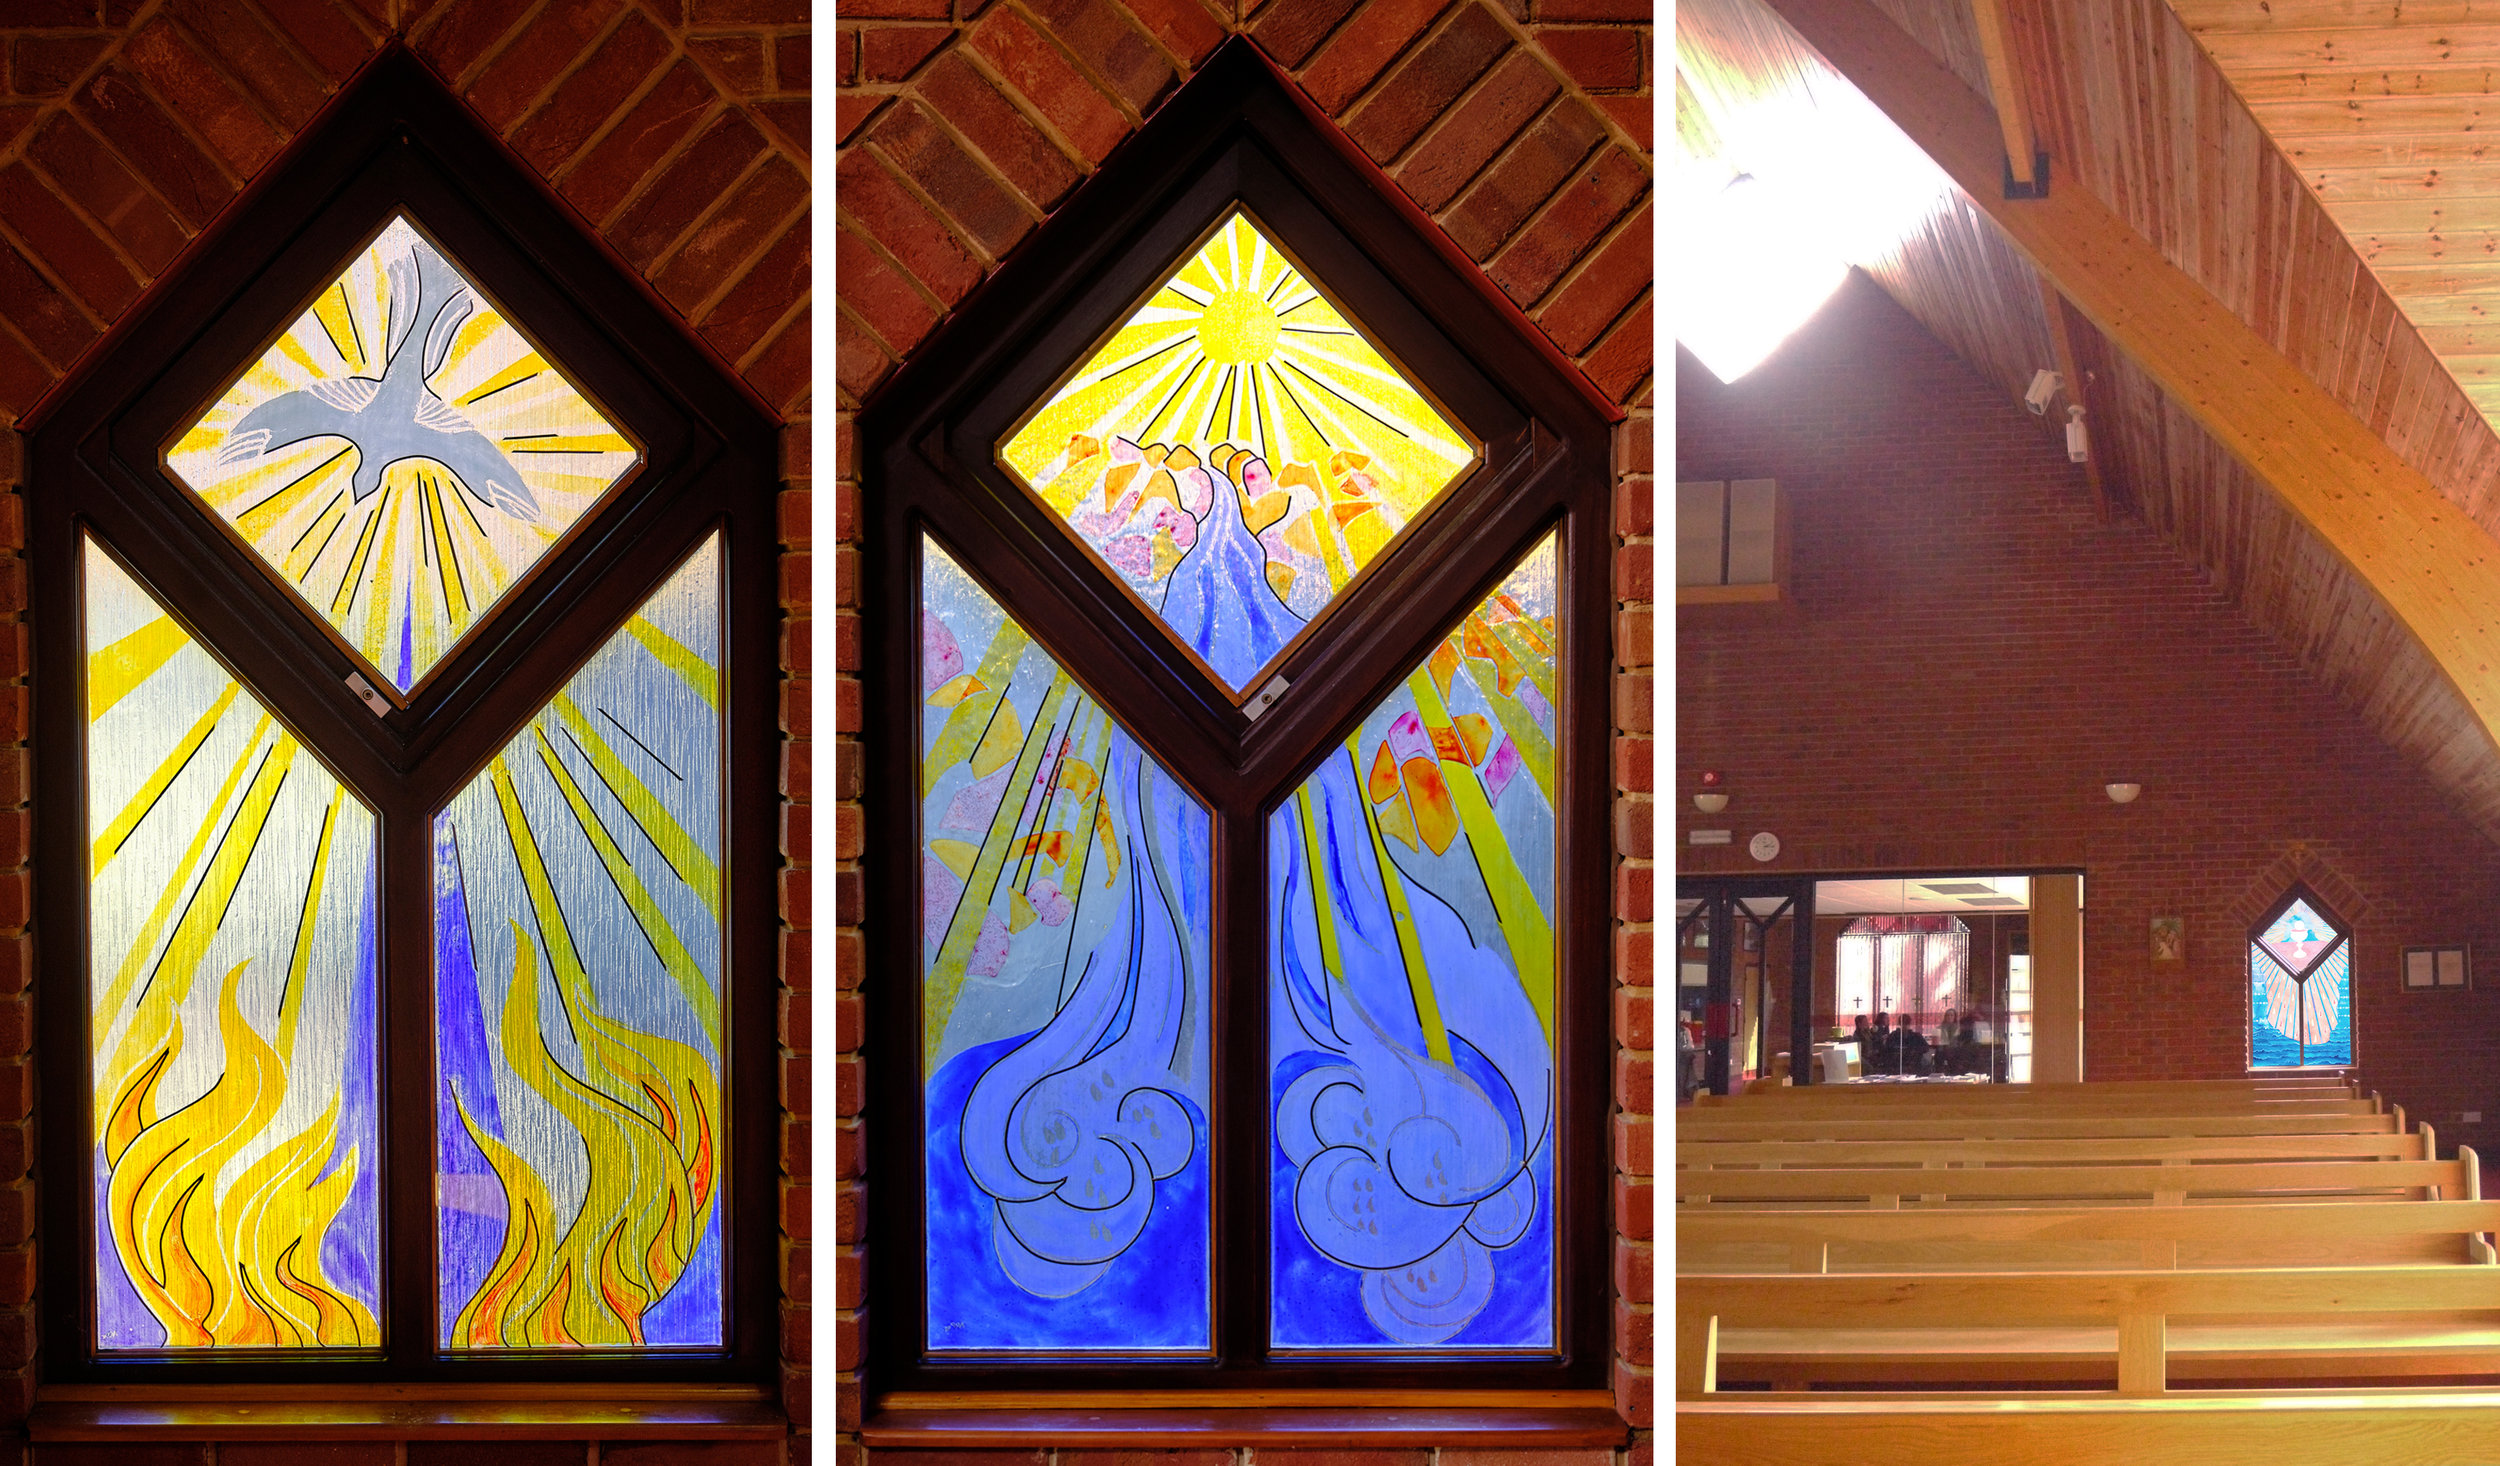 Inside Blessed Robert Griswold Church: 2 existing windows, artist unknown. Photomontage showing my design